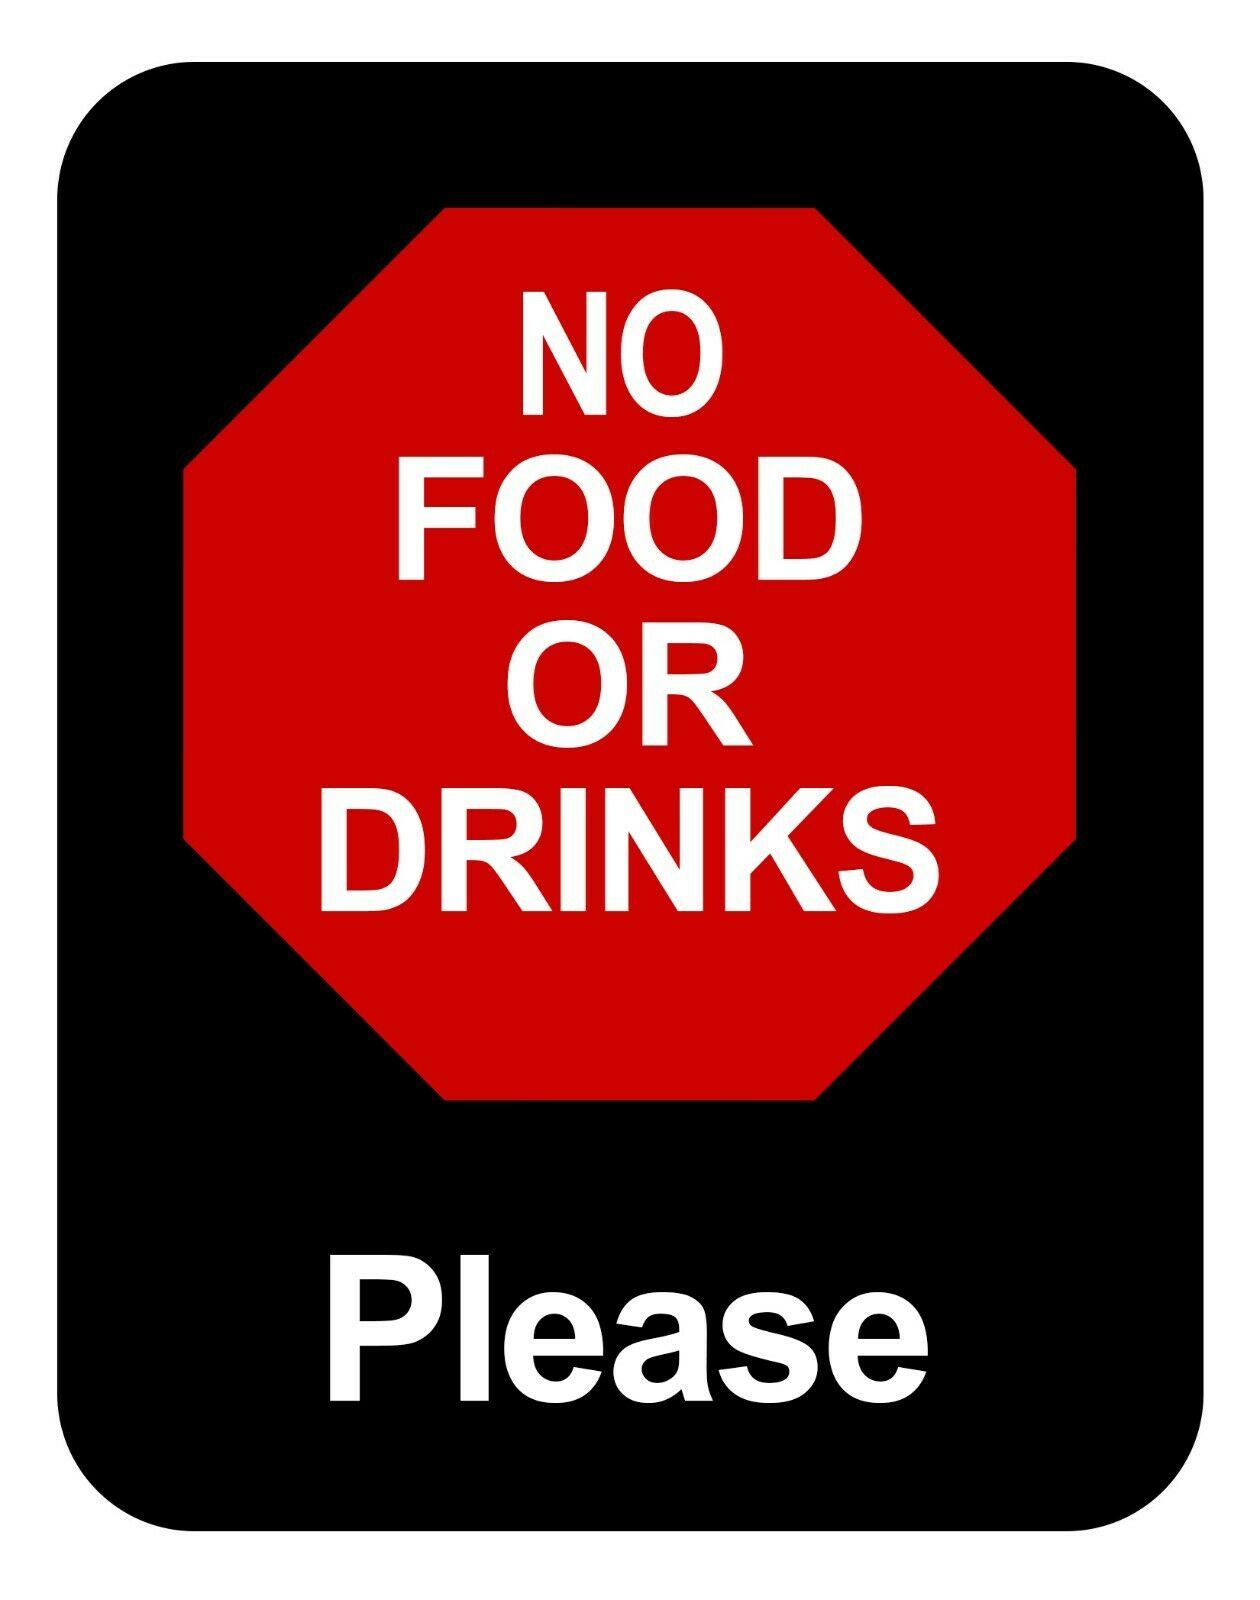 NO FOOD OR DRINKS PLEASE Retail Store Policy Sign Business Message signs